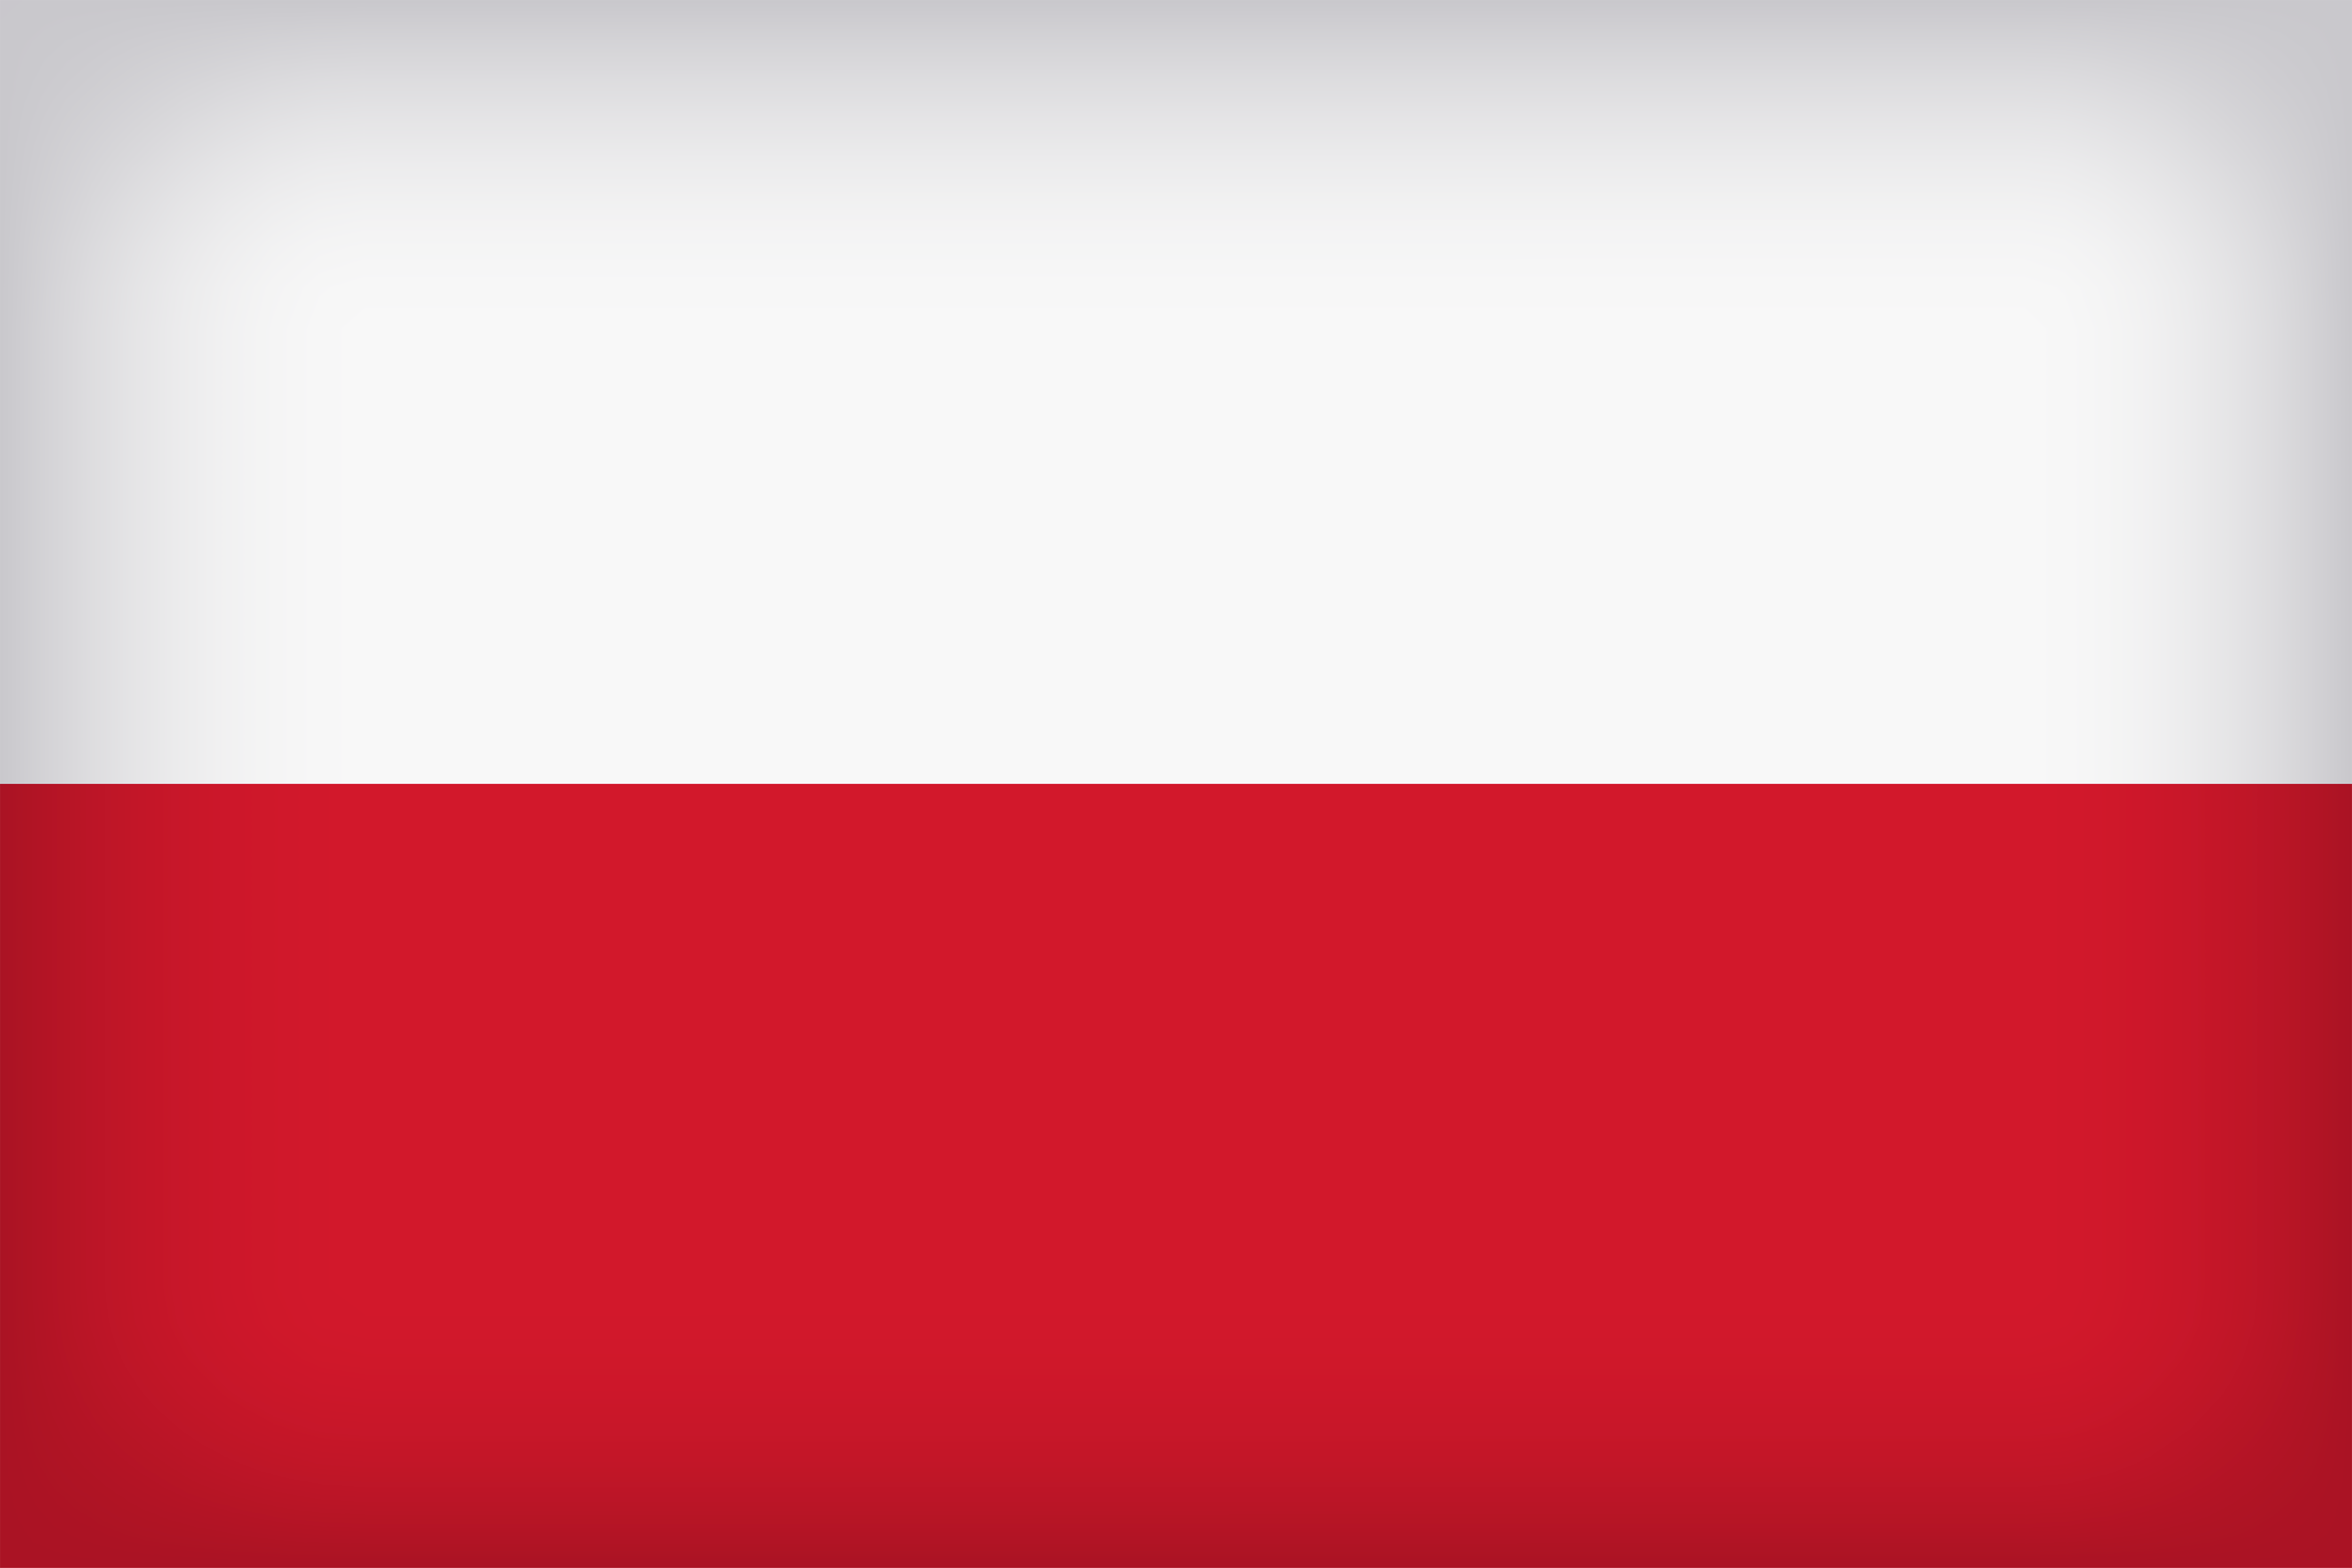 File:Flag of Poland.svg Wikipedia